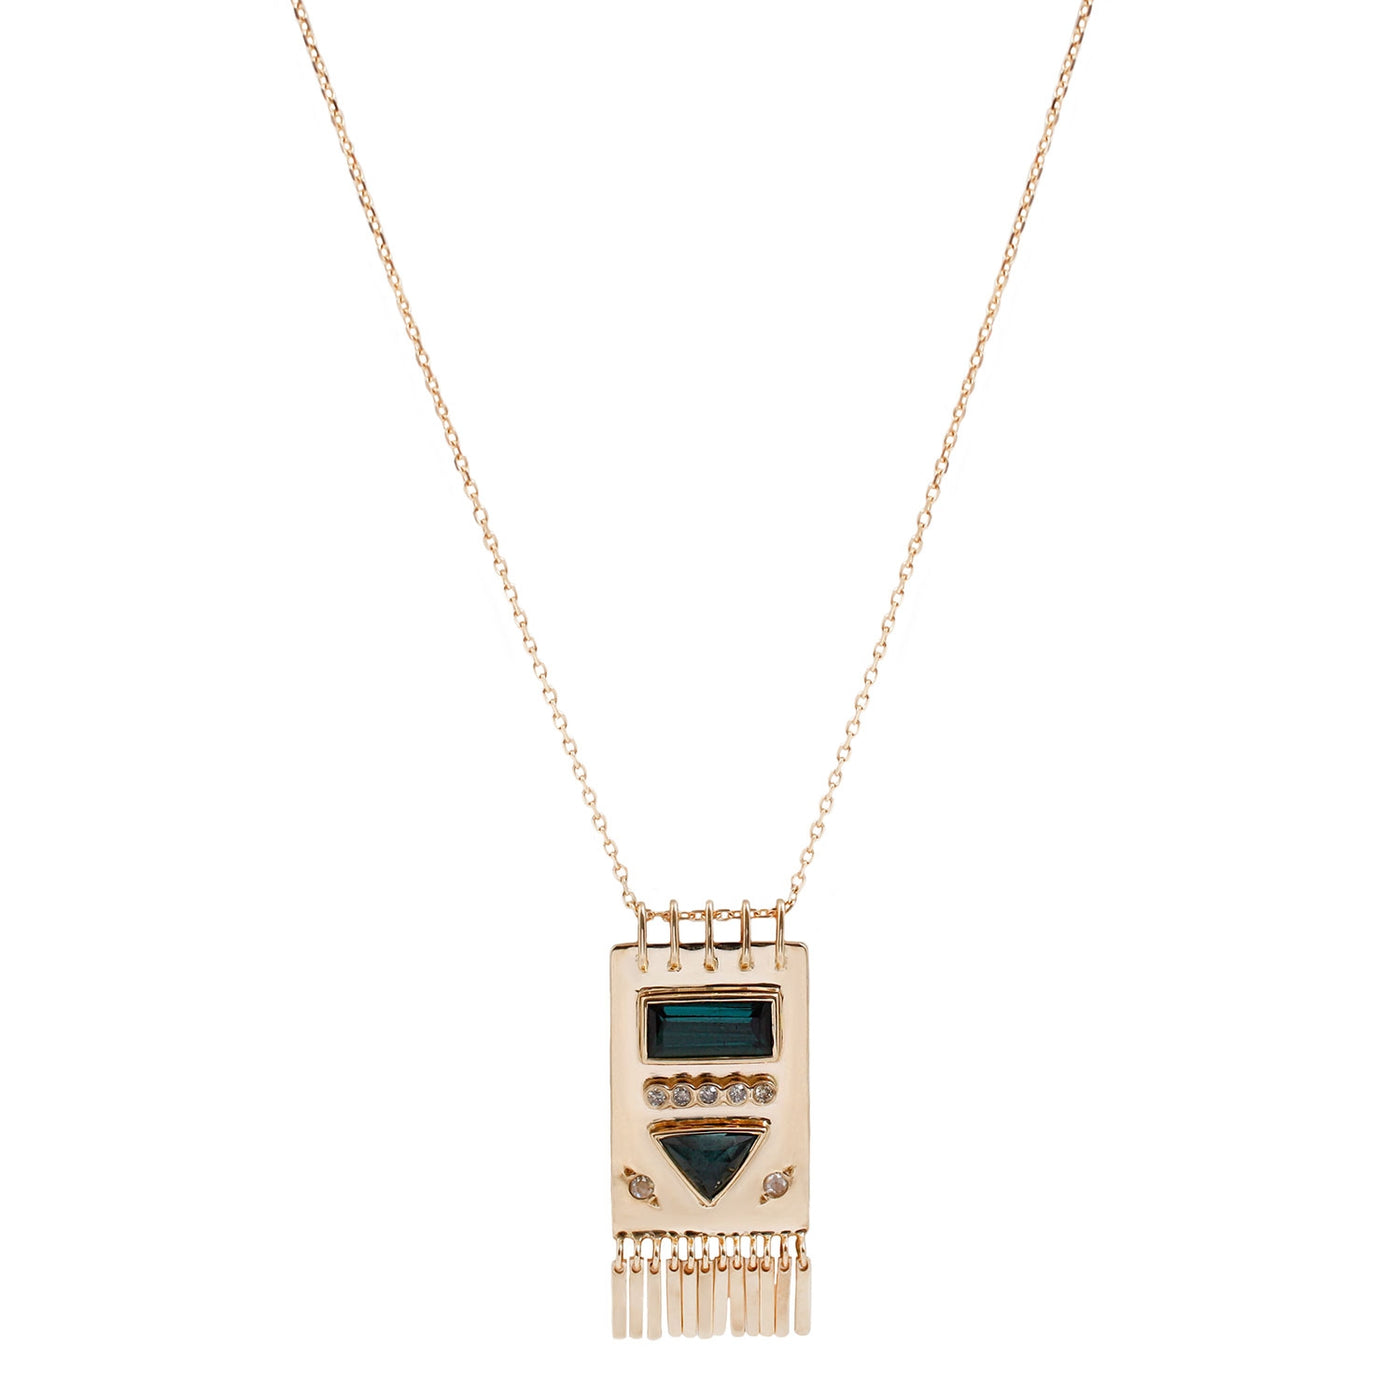 Celine D'Aoust Pampille Necklace